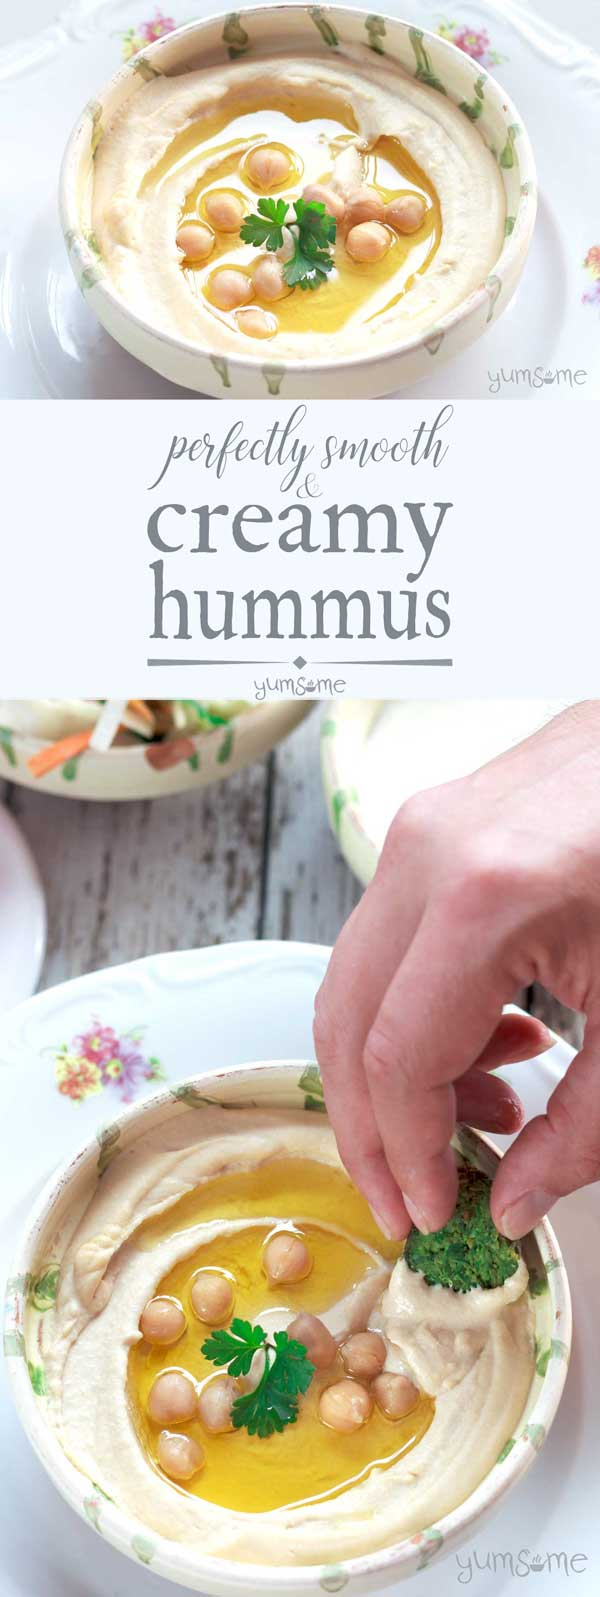 The Secret To Smooth and Creamy Hummus